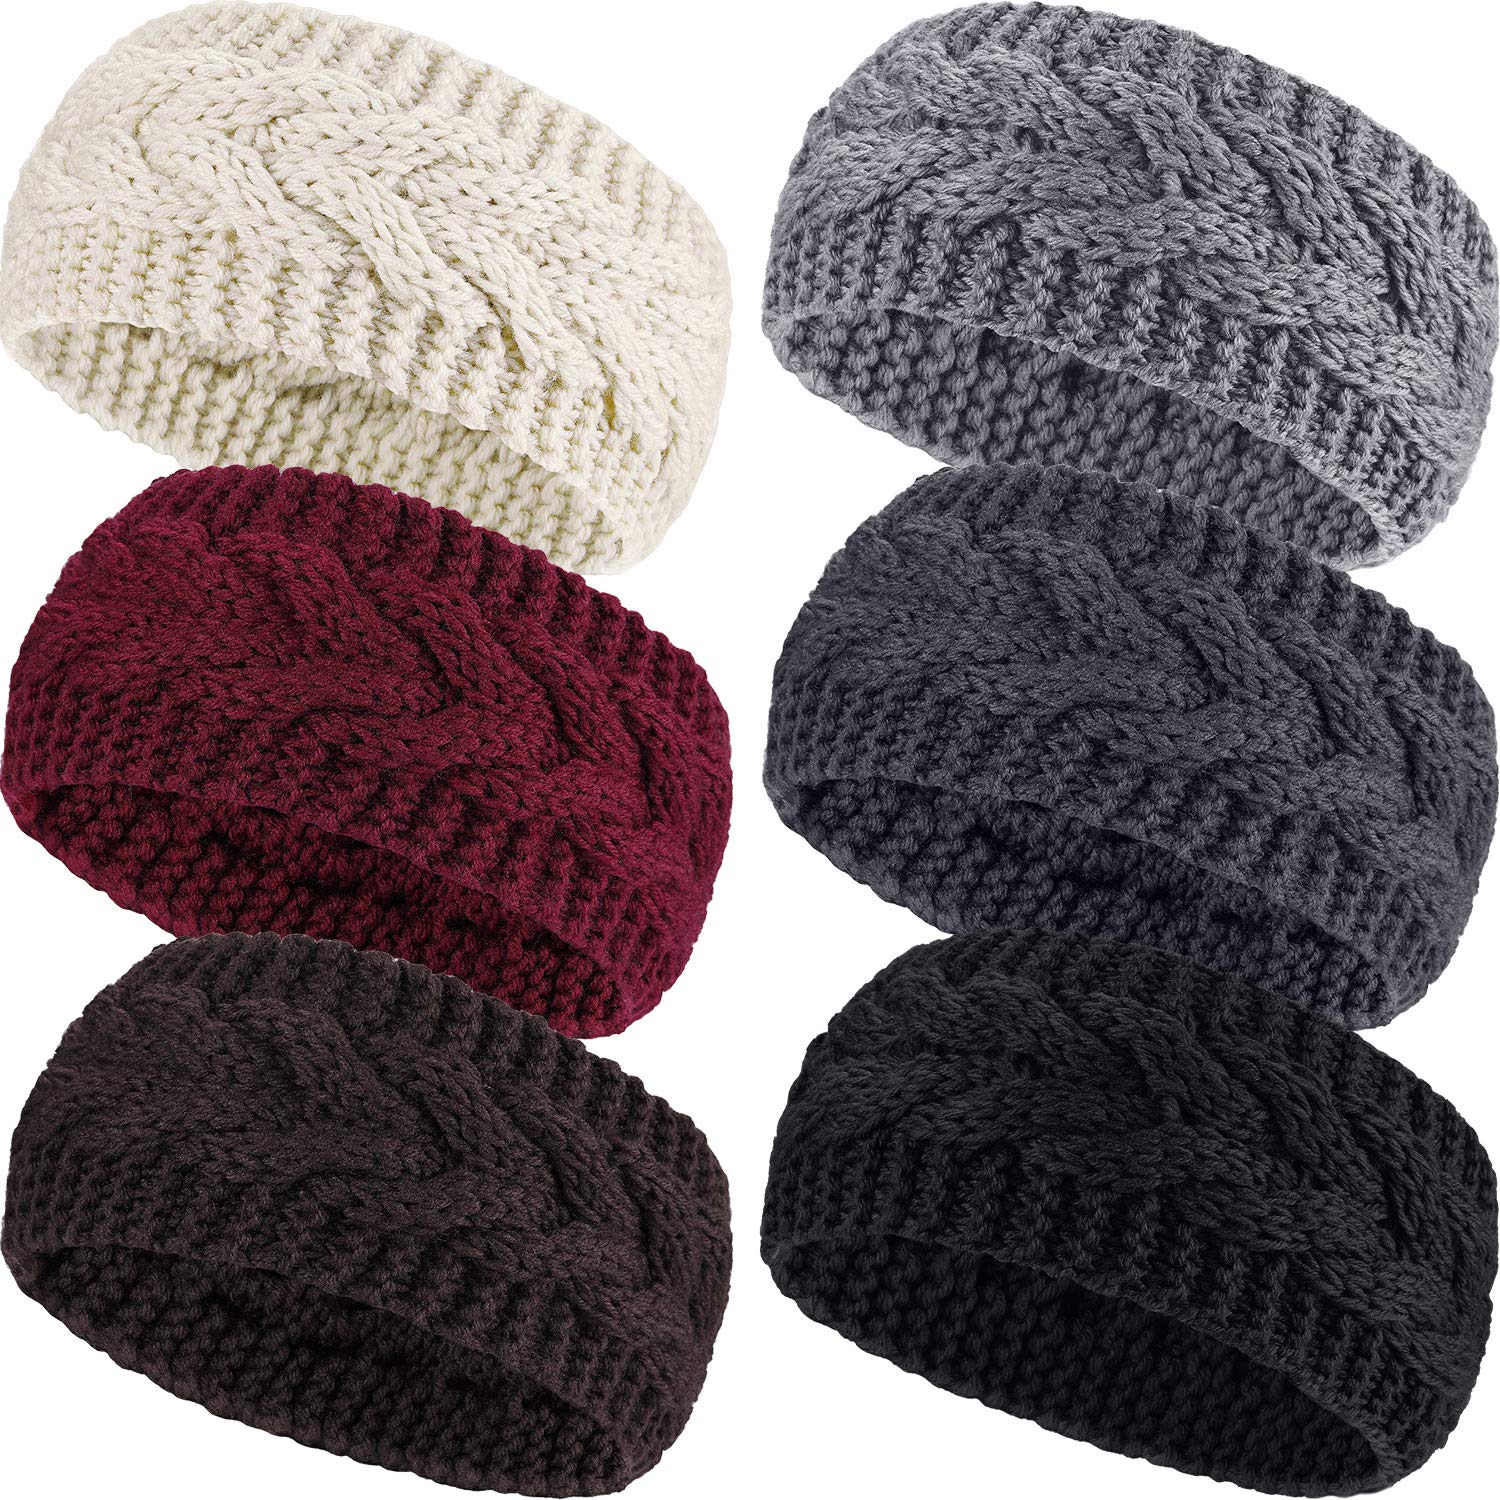 Pangda 6 Pieces Winter Headbands Women's Cable Knitted Headbands, Winter Chunky Ear Warmers Suitable for Daily Wear and Sport (Assorted Color Twist Style)